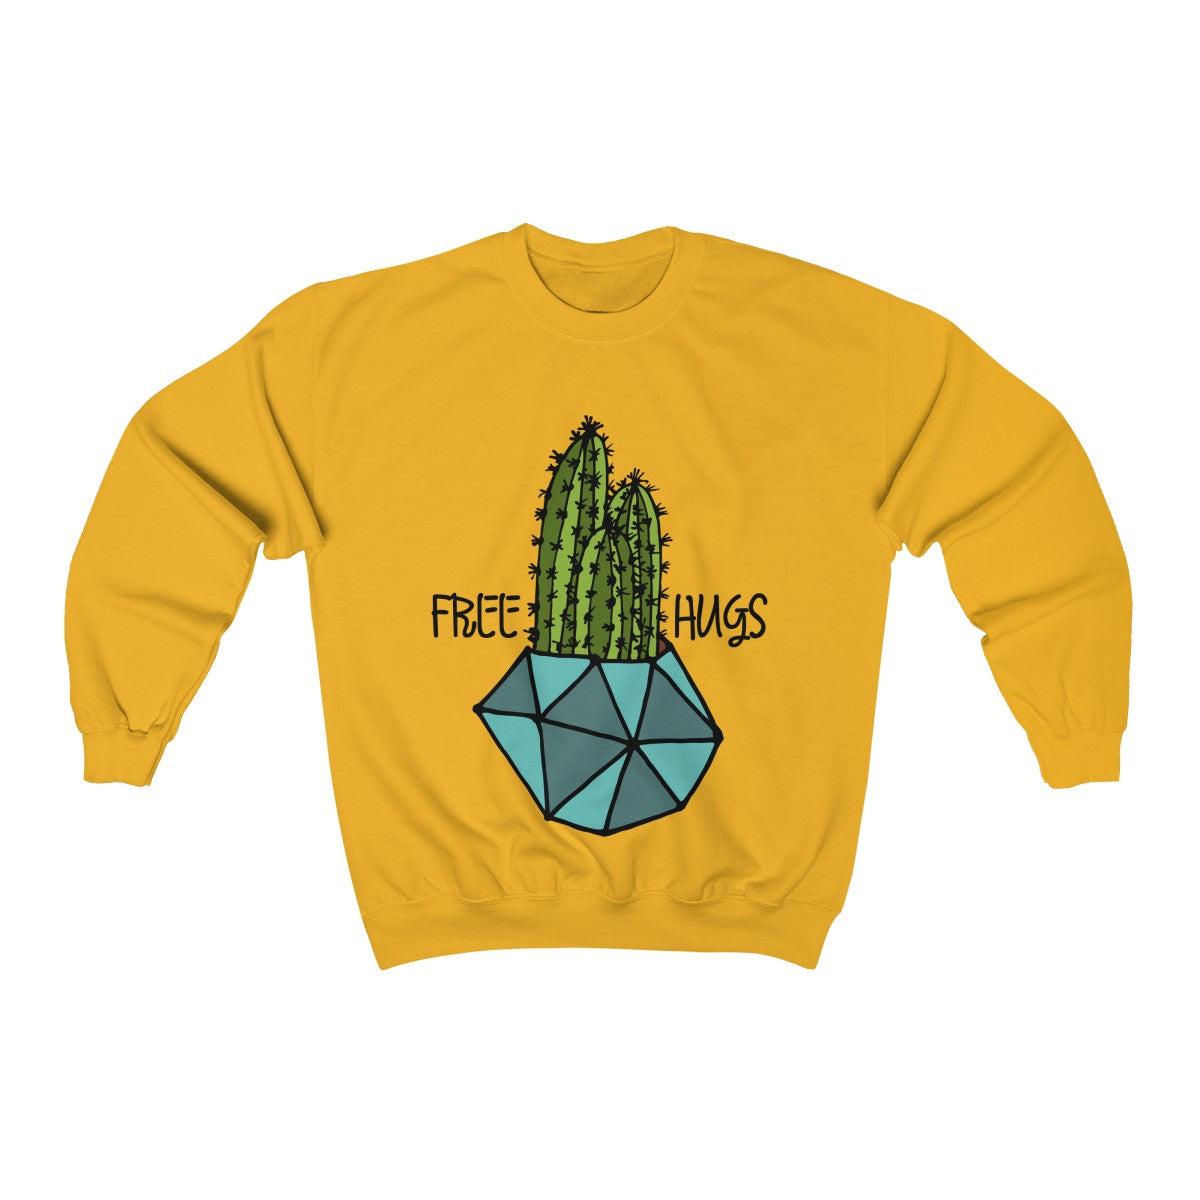 Cactus Sweatshirt, Funny Cactus Shirt, Sweatshirt, Crewneck Sweatshifrt, Funny Sweatshirt, Funny Sweater, Sarcastic Sweater - jewelry-by-meesh